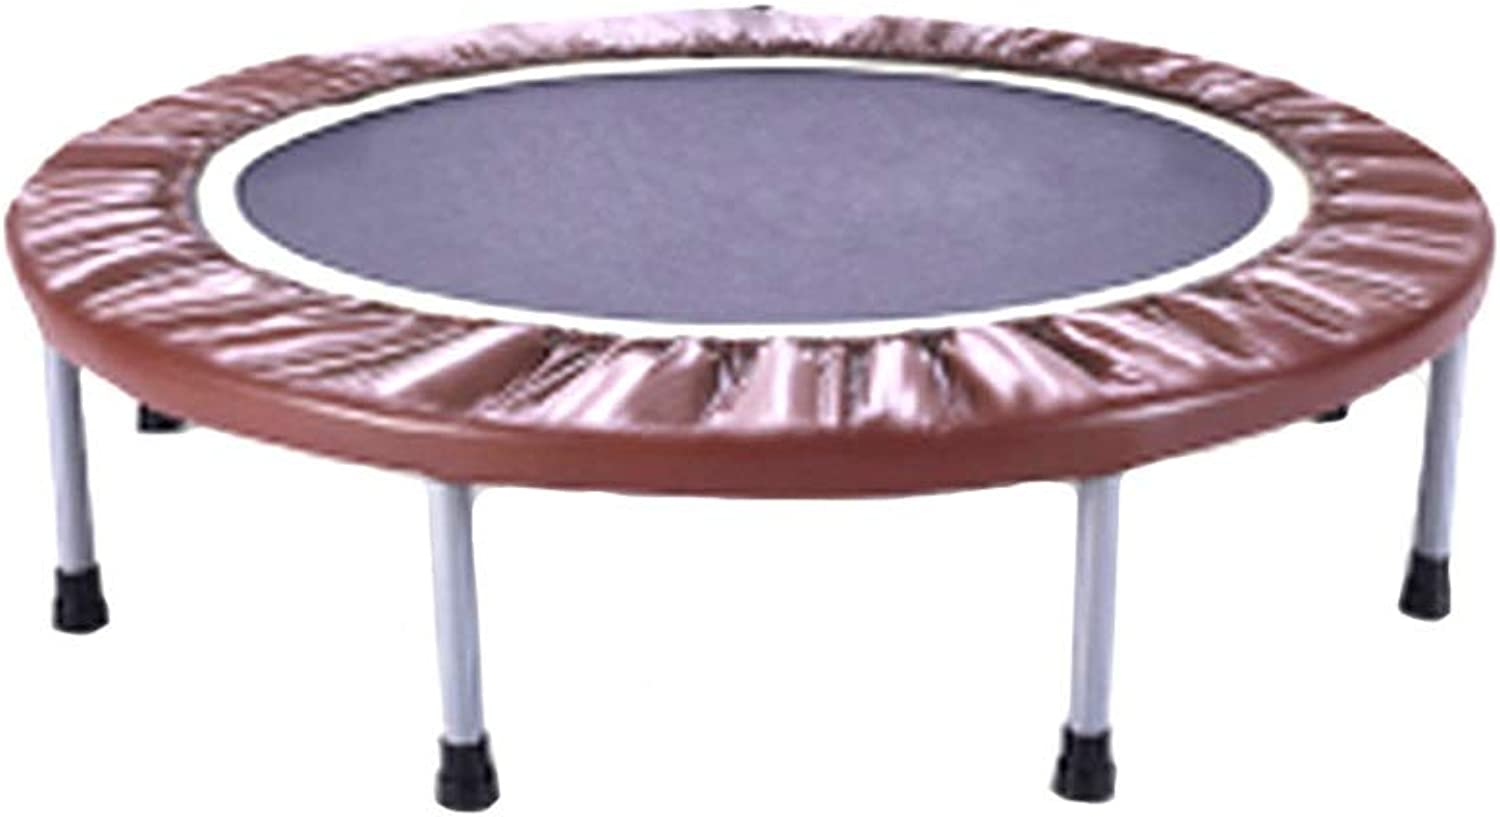 Trampolines 38 Inches Mini with Safety Pad, For Indoor Garden Workout Cardio Training - For Kids Adults - Max Load 200kg